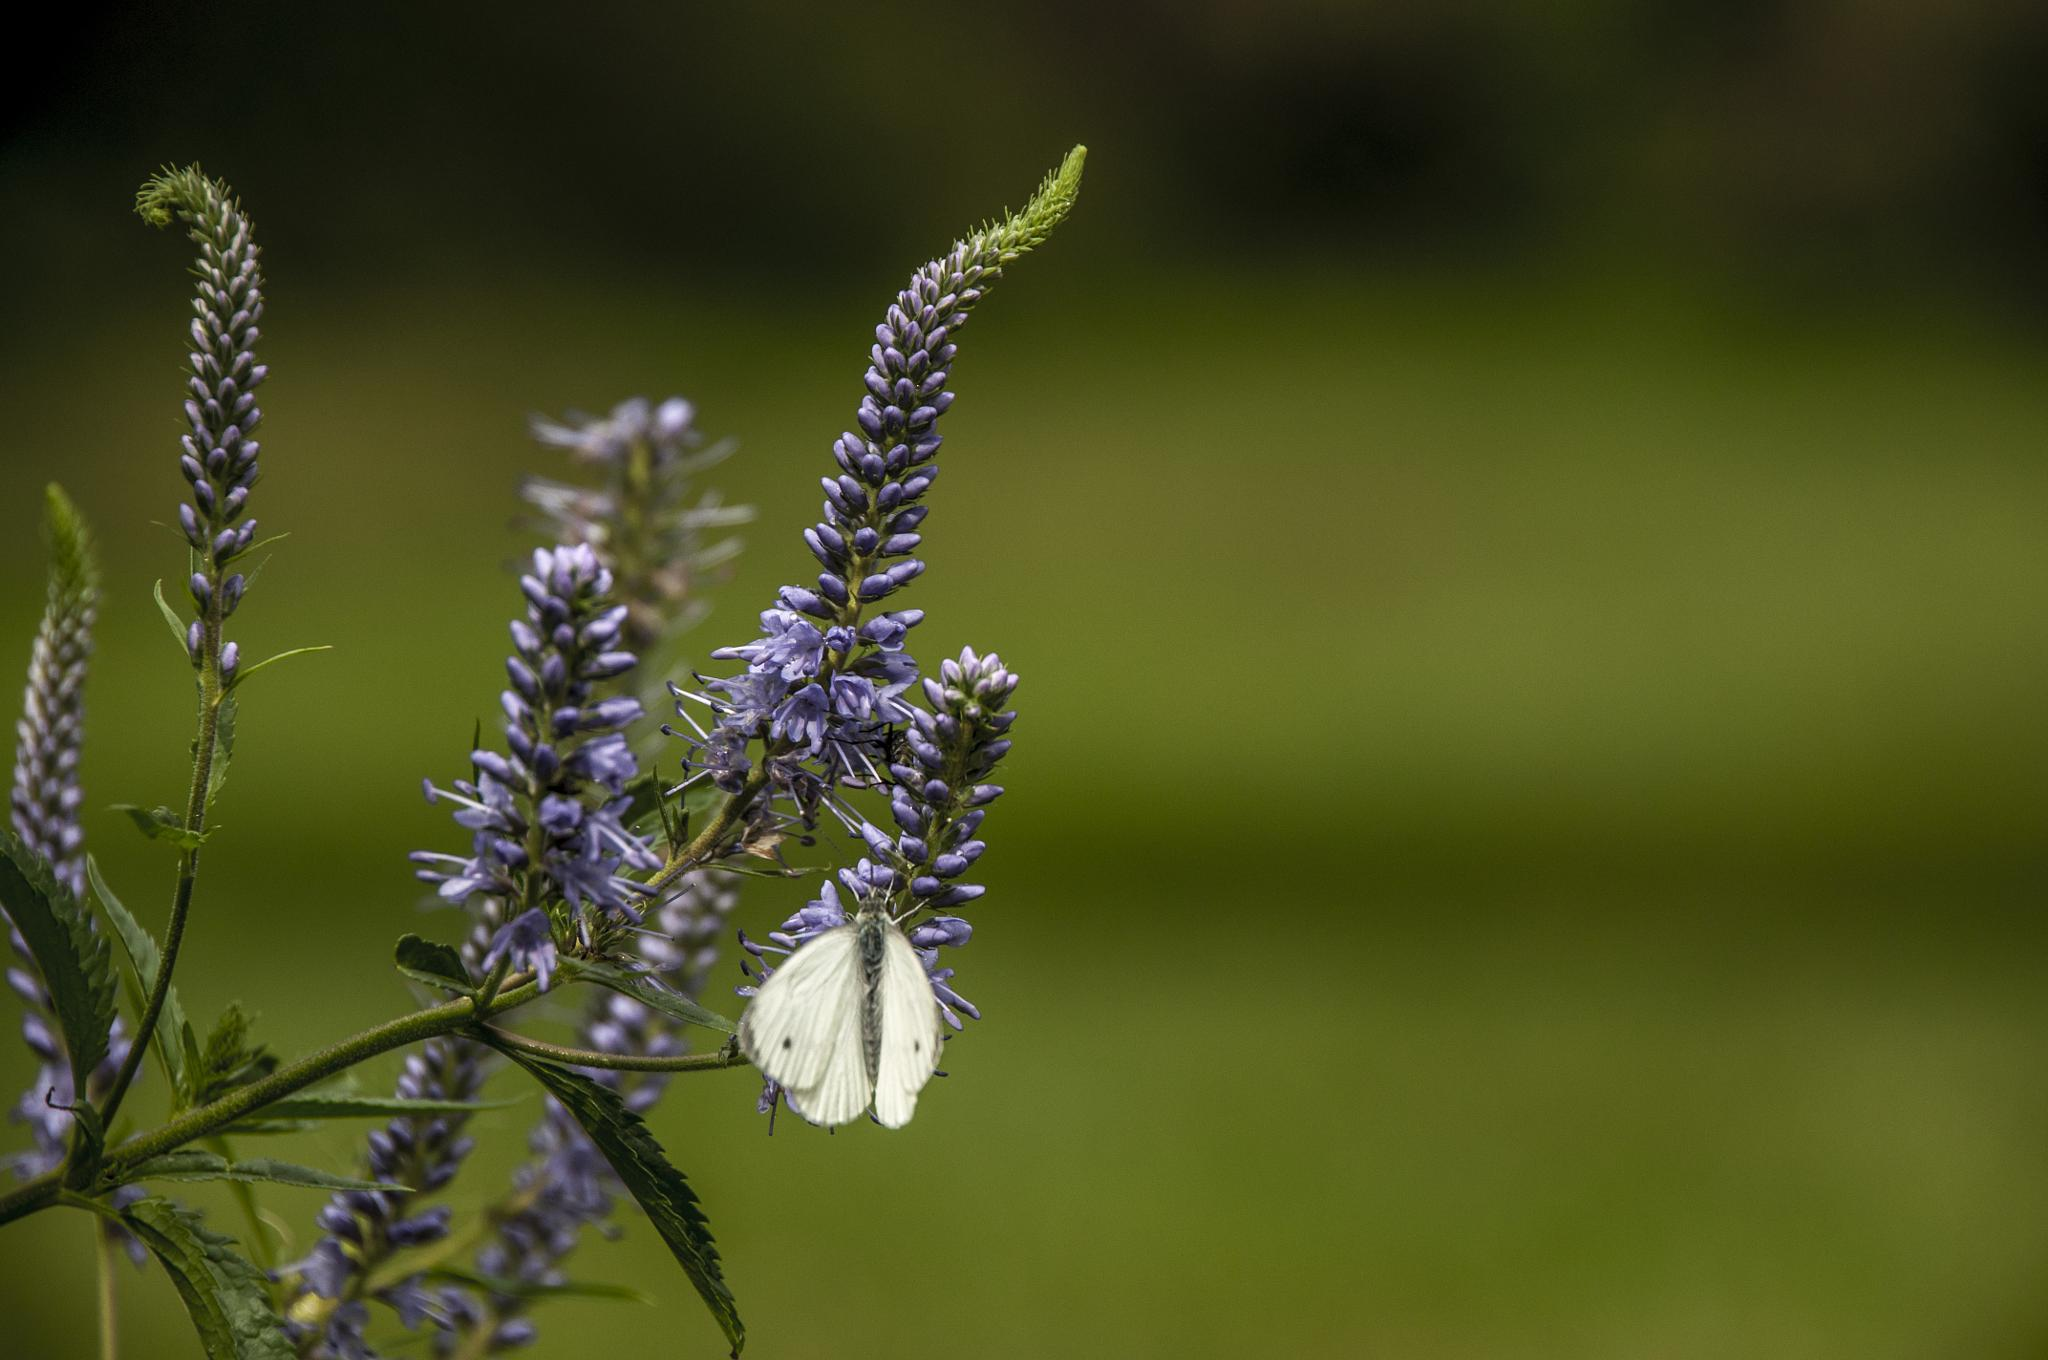 white butterfly in the green by gorber